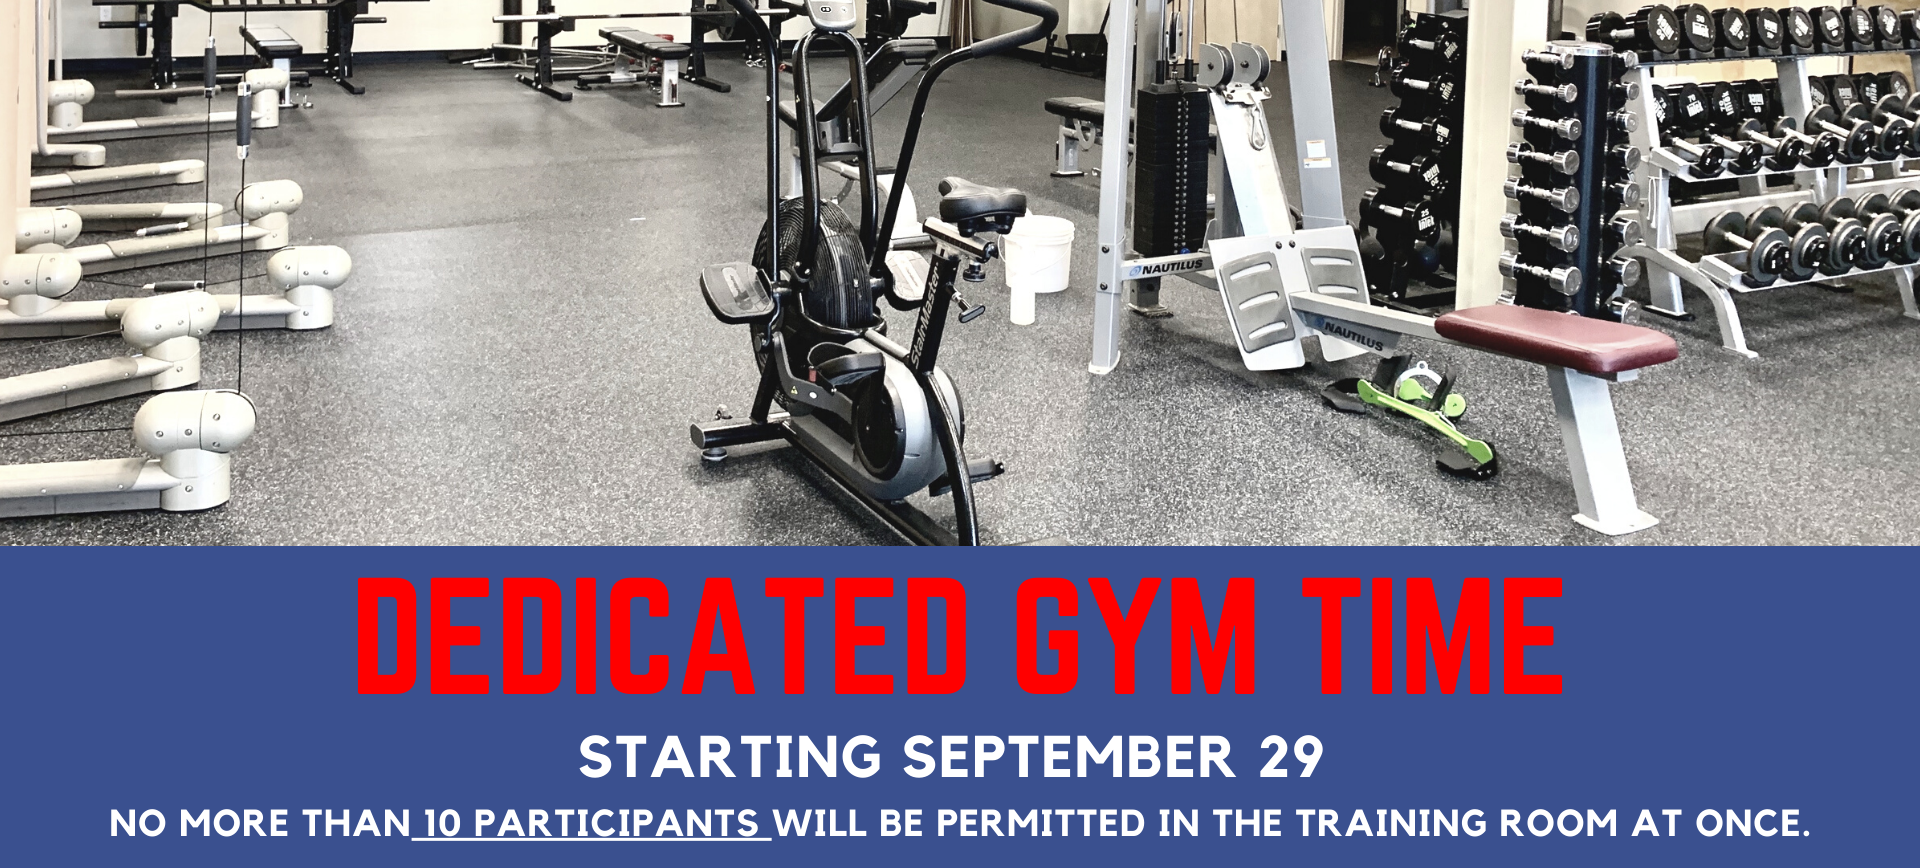 Dedicated Gym Time Old Town Athletic Campus